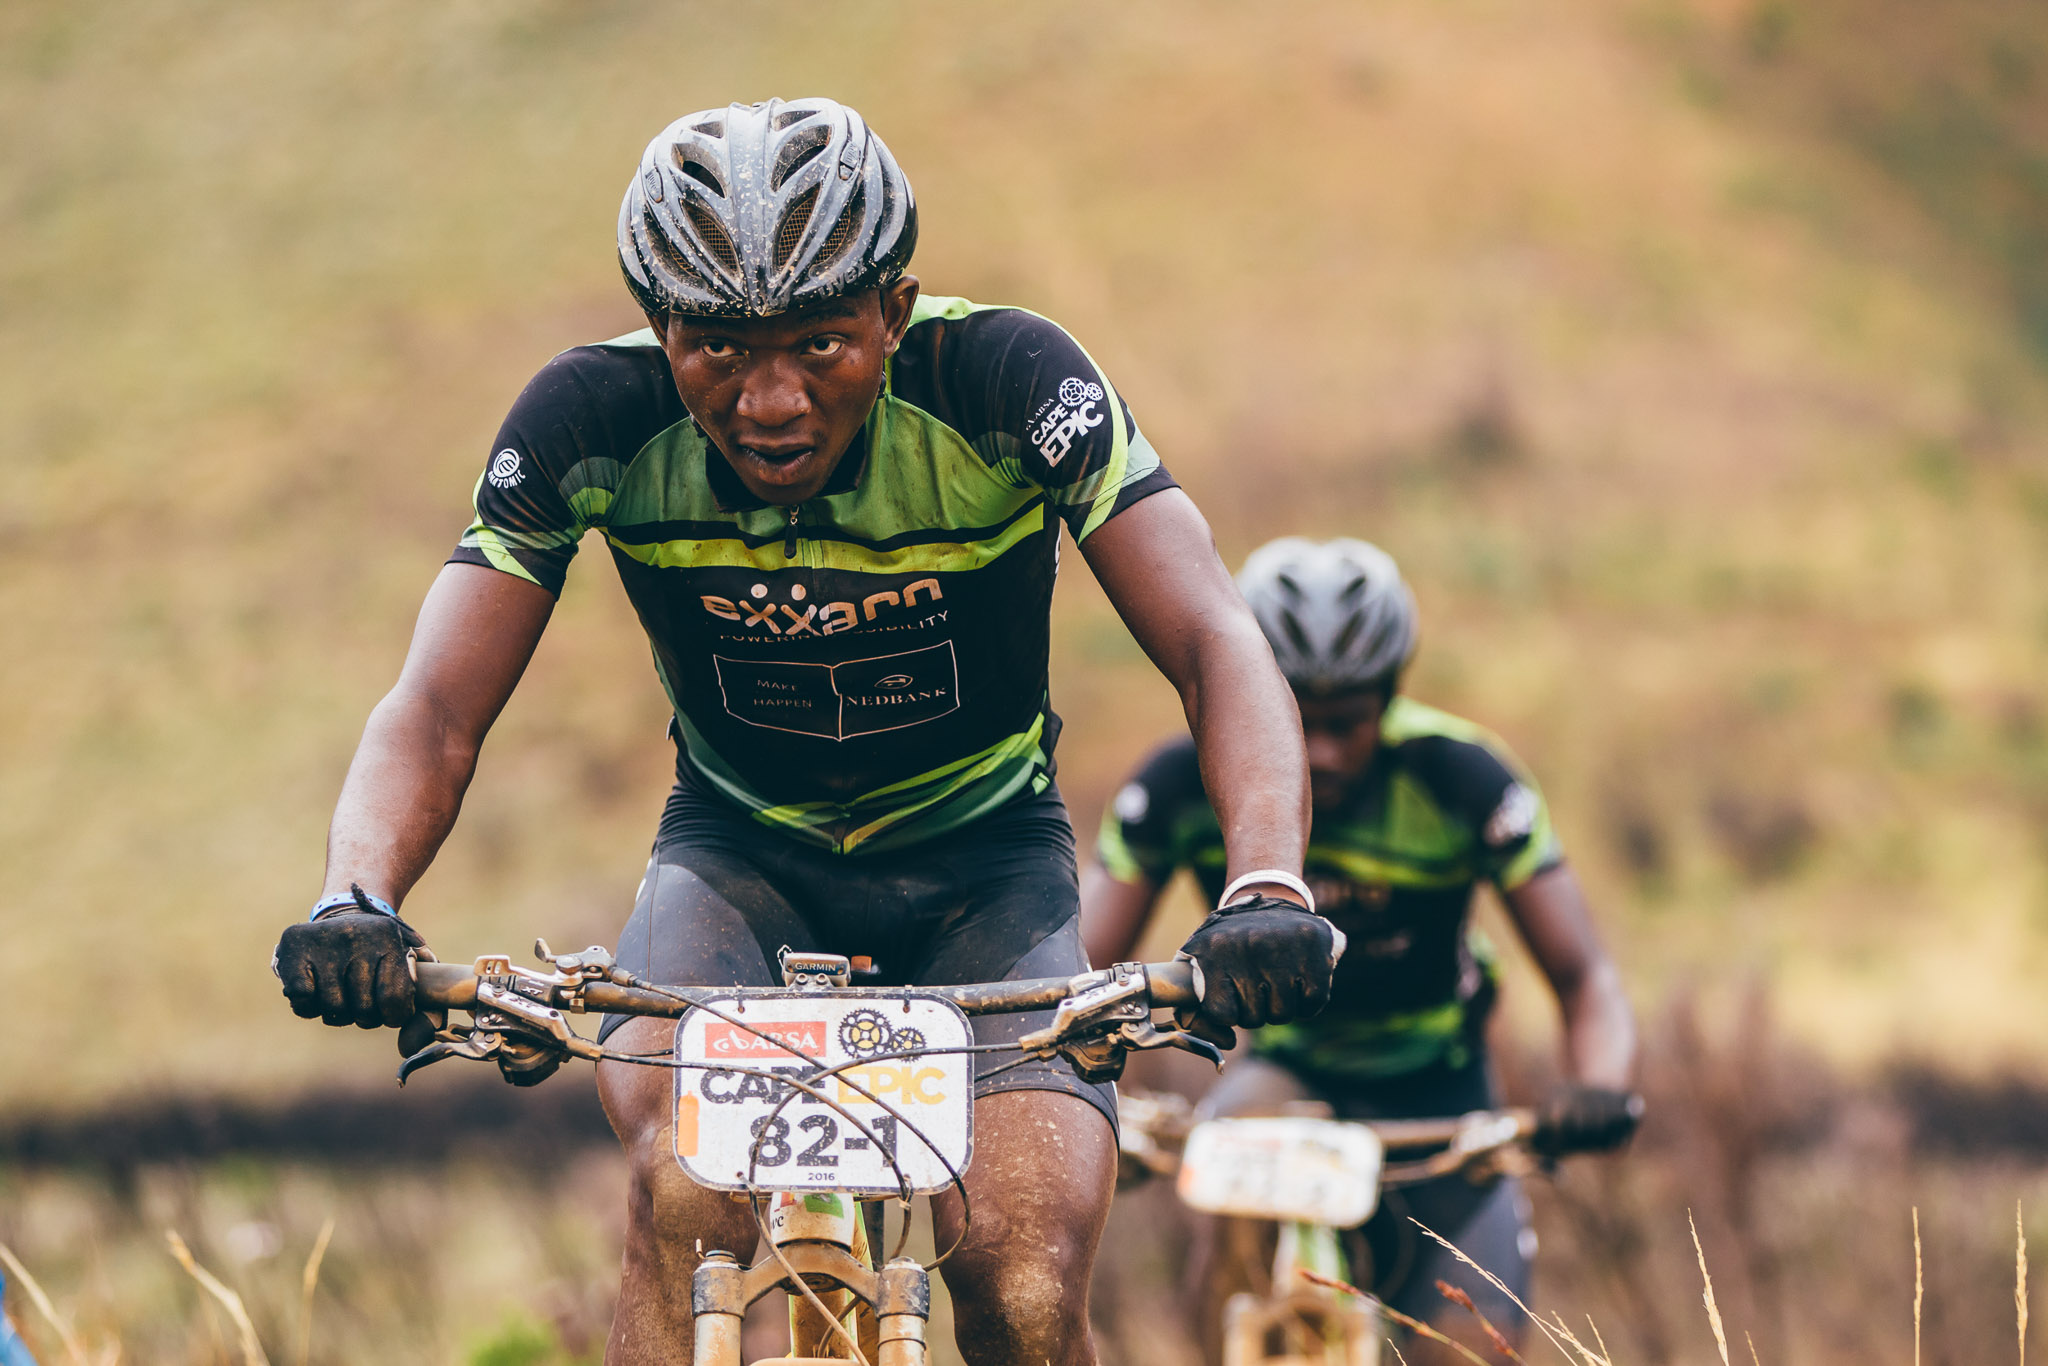 Team Exxaro/Tronox's Rilamulele Gadabeni and Tovhowani Mavundadavhi during stage 4 of the 2016 Absa Cape Epic Mountain Bike stage race from the Cape Peninsula University of Technology in Wellington, South Africa on the 17th March 2016 Photo by Ewald Sadie/Cape Epic/SPORTZPICS PLEASE ENSURE THE APPROPRIATE CREDIT IS GIVEN TO THE PHOTOGRAPHER AND SPORTZPICS ALONG WITH THE ABSA CAPE EPIC {ace2016}